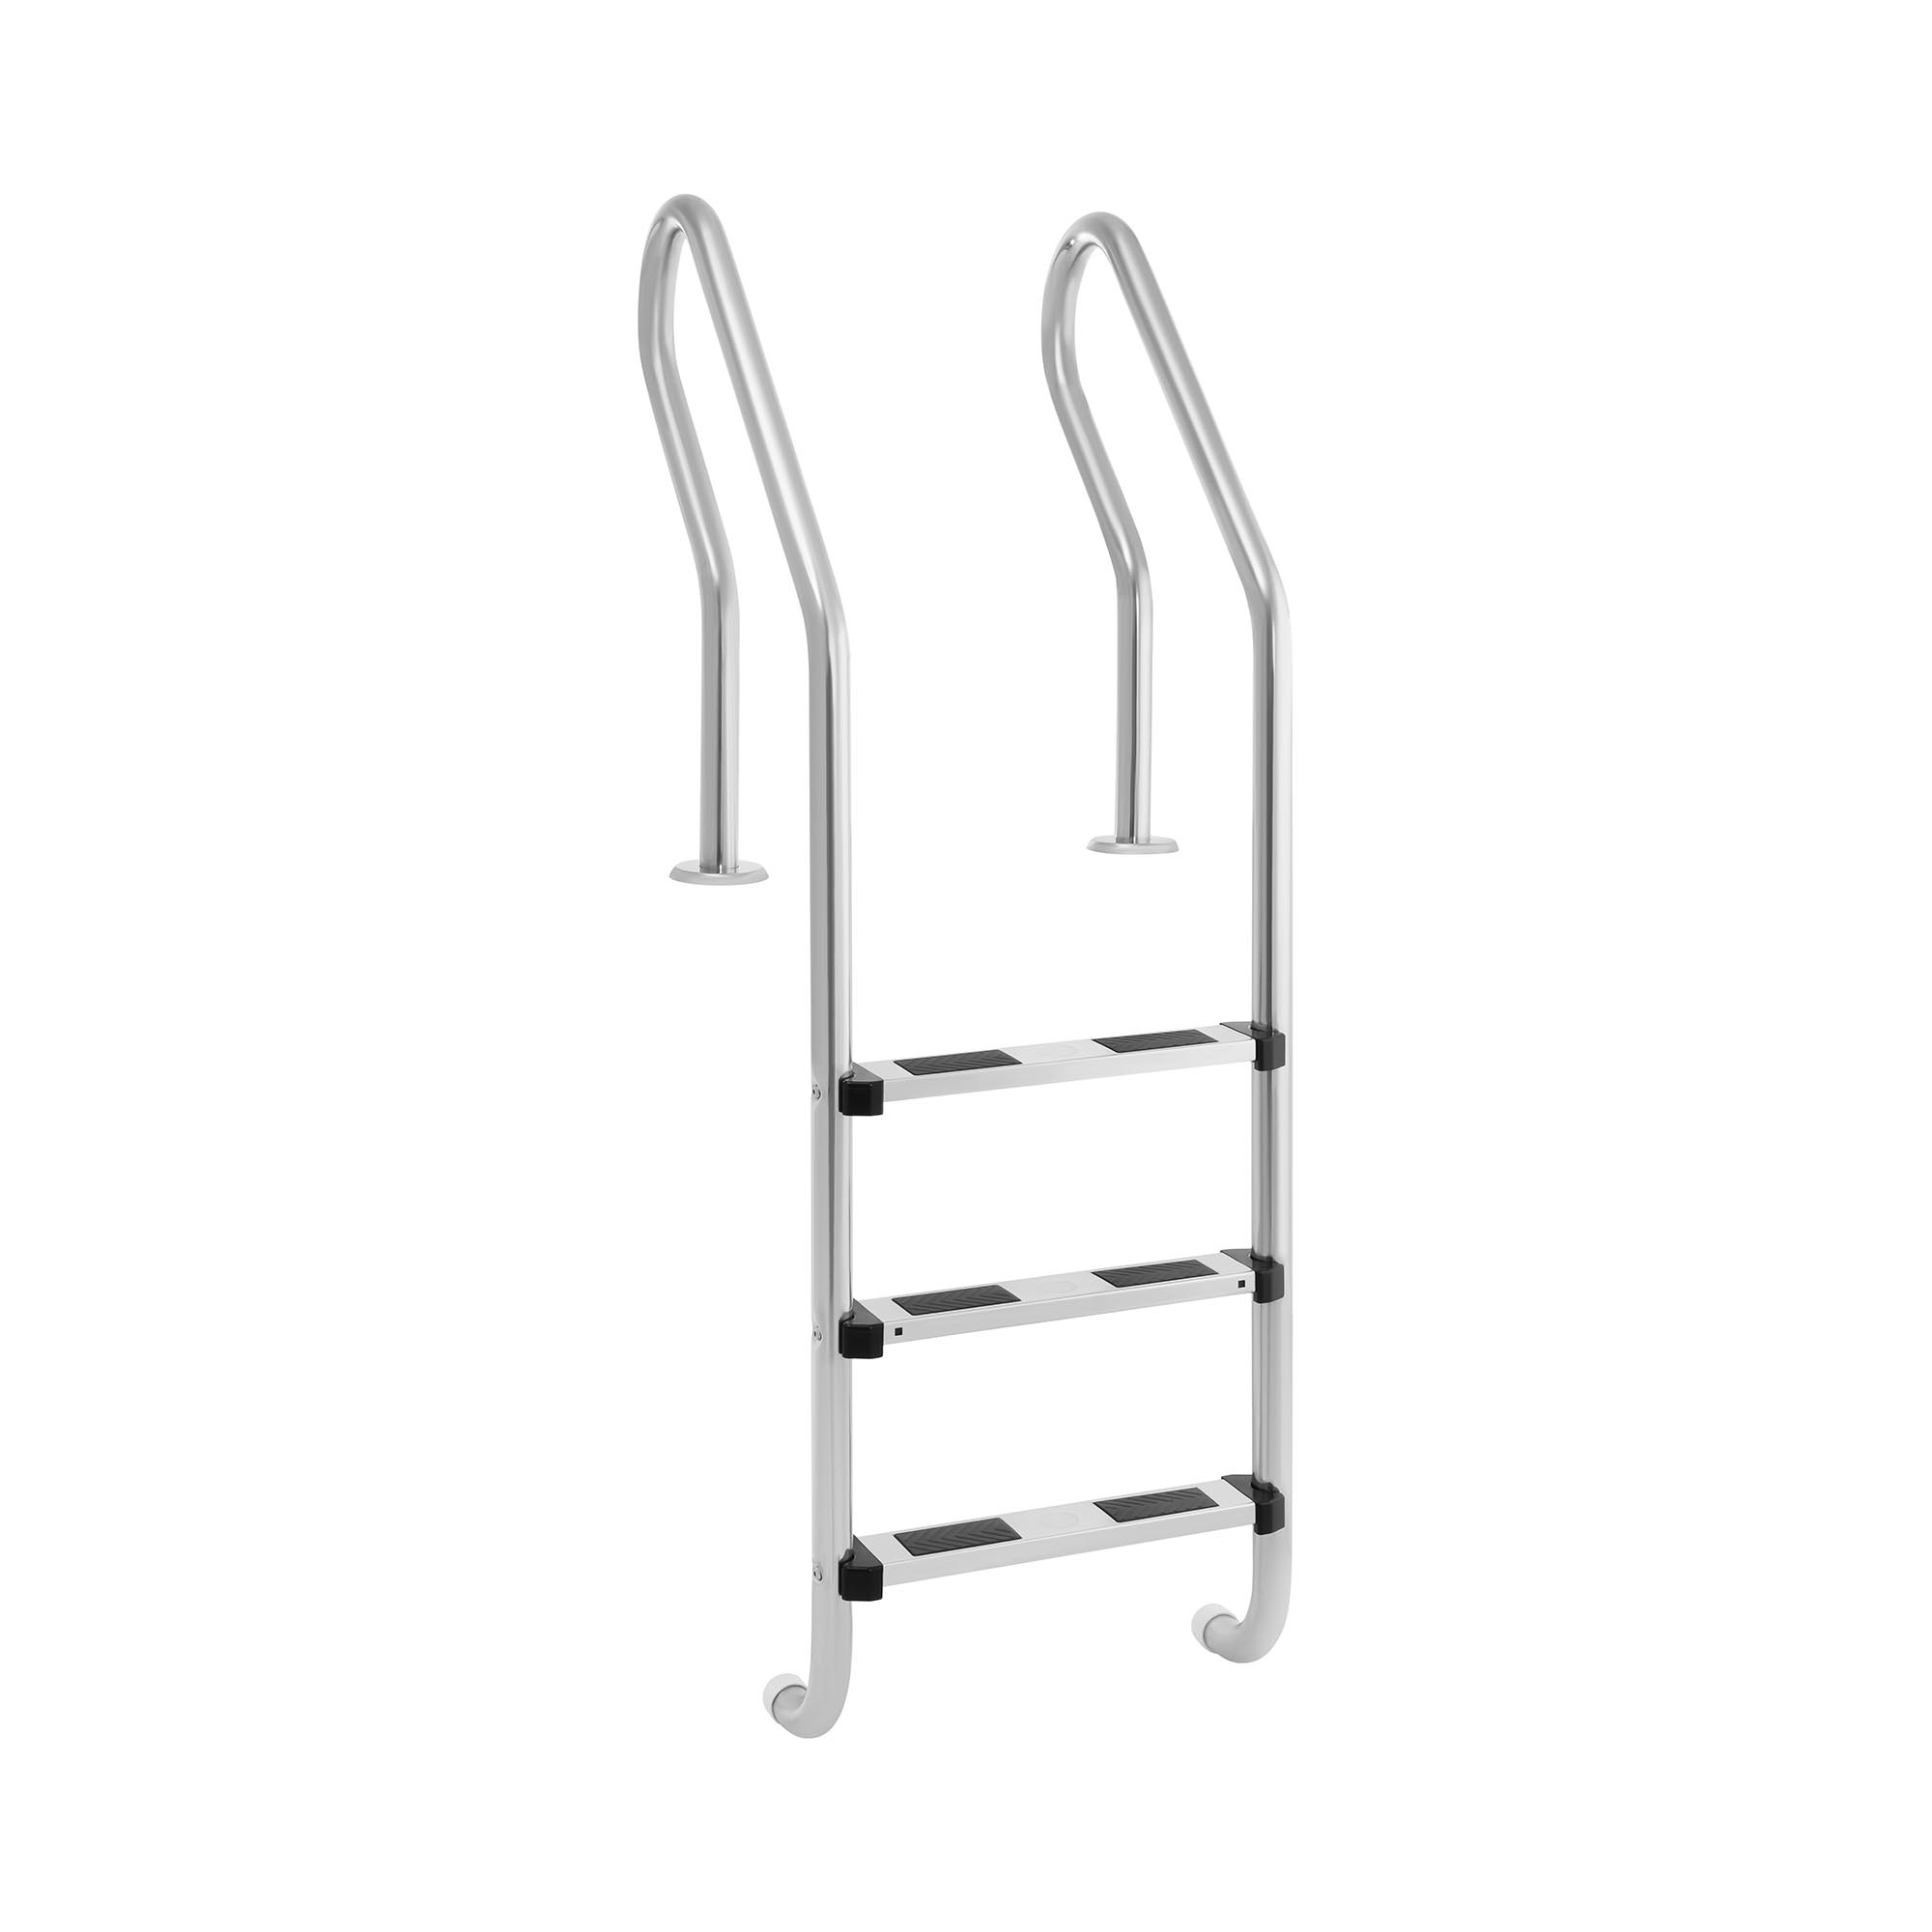 Uniprodo Poolleiter - 3 Stufen UNI_POOL_LADDER_1600